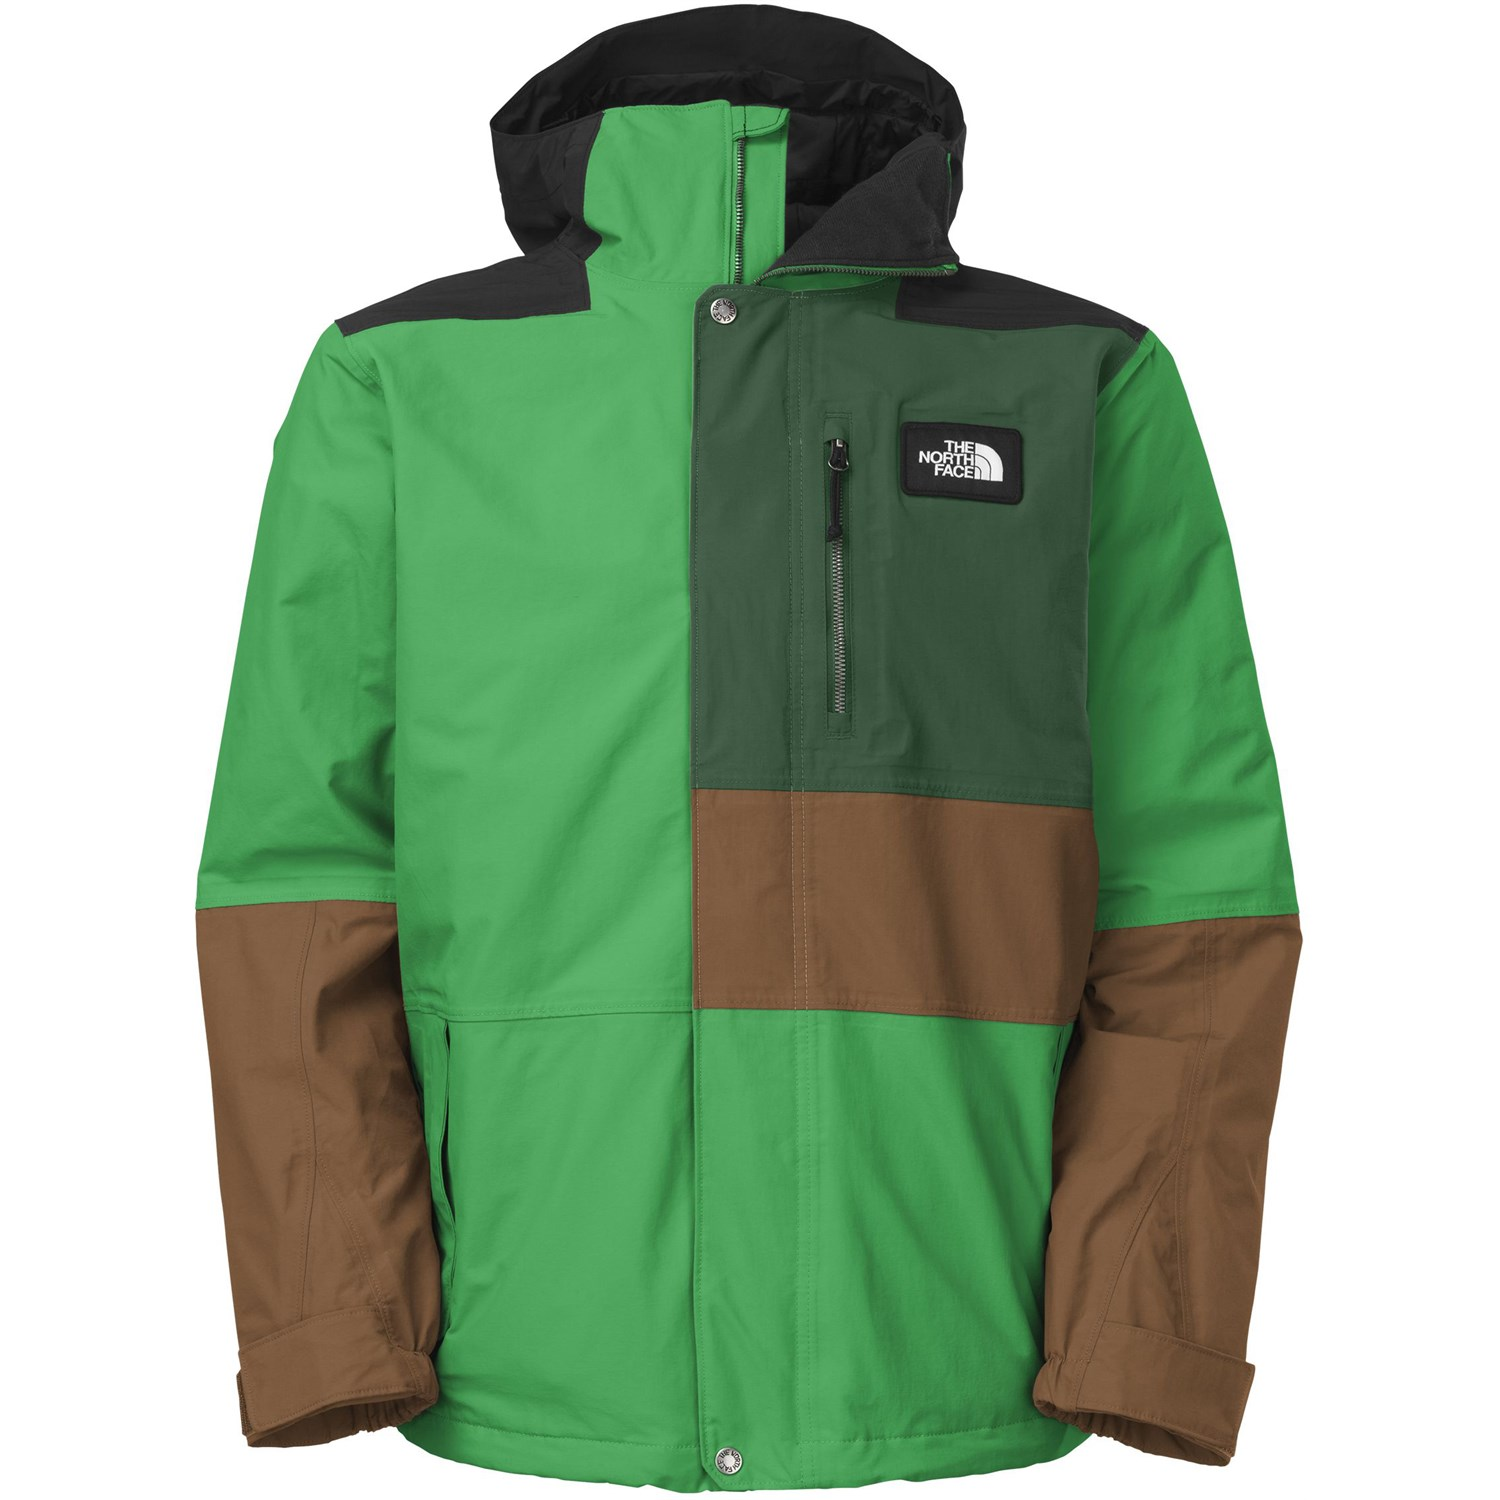 d20e5b60cd06 The North Face Dubs Insulated Jacket